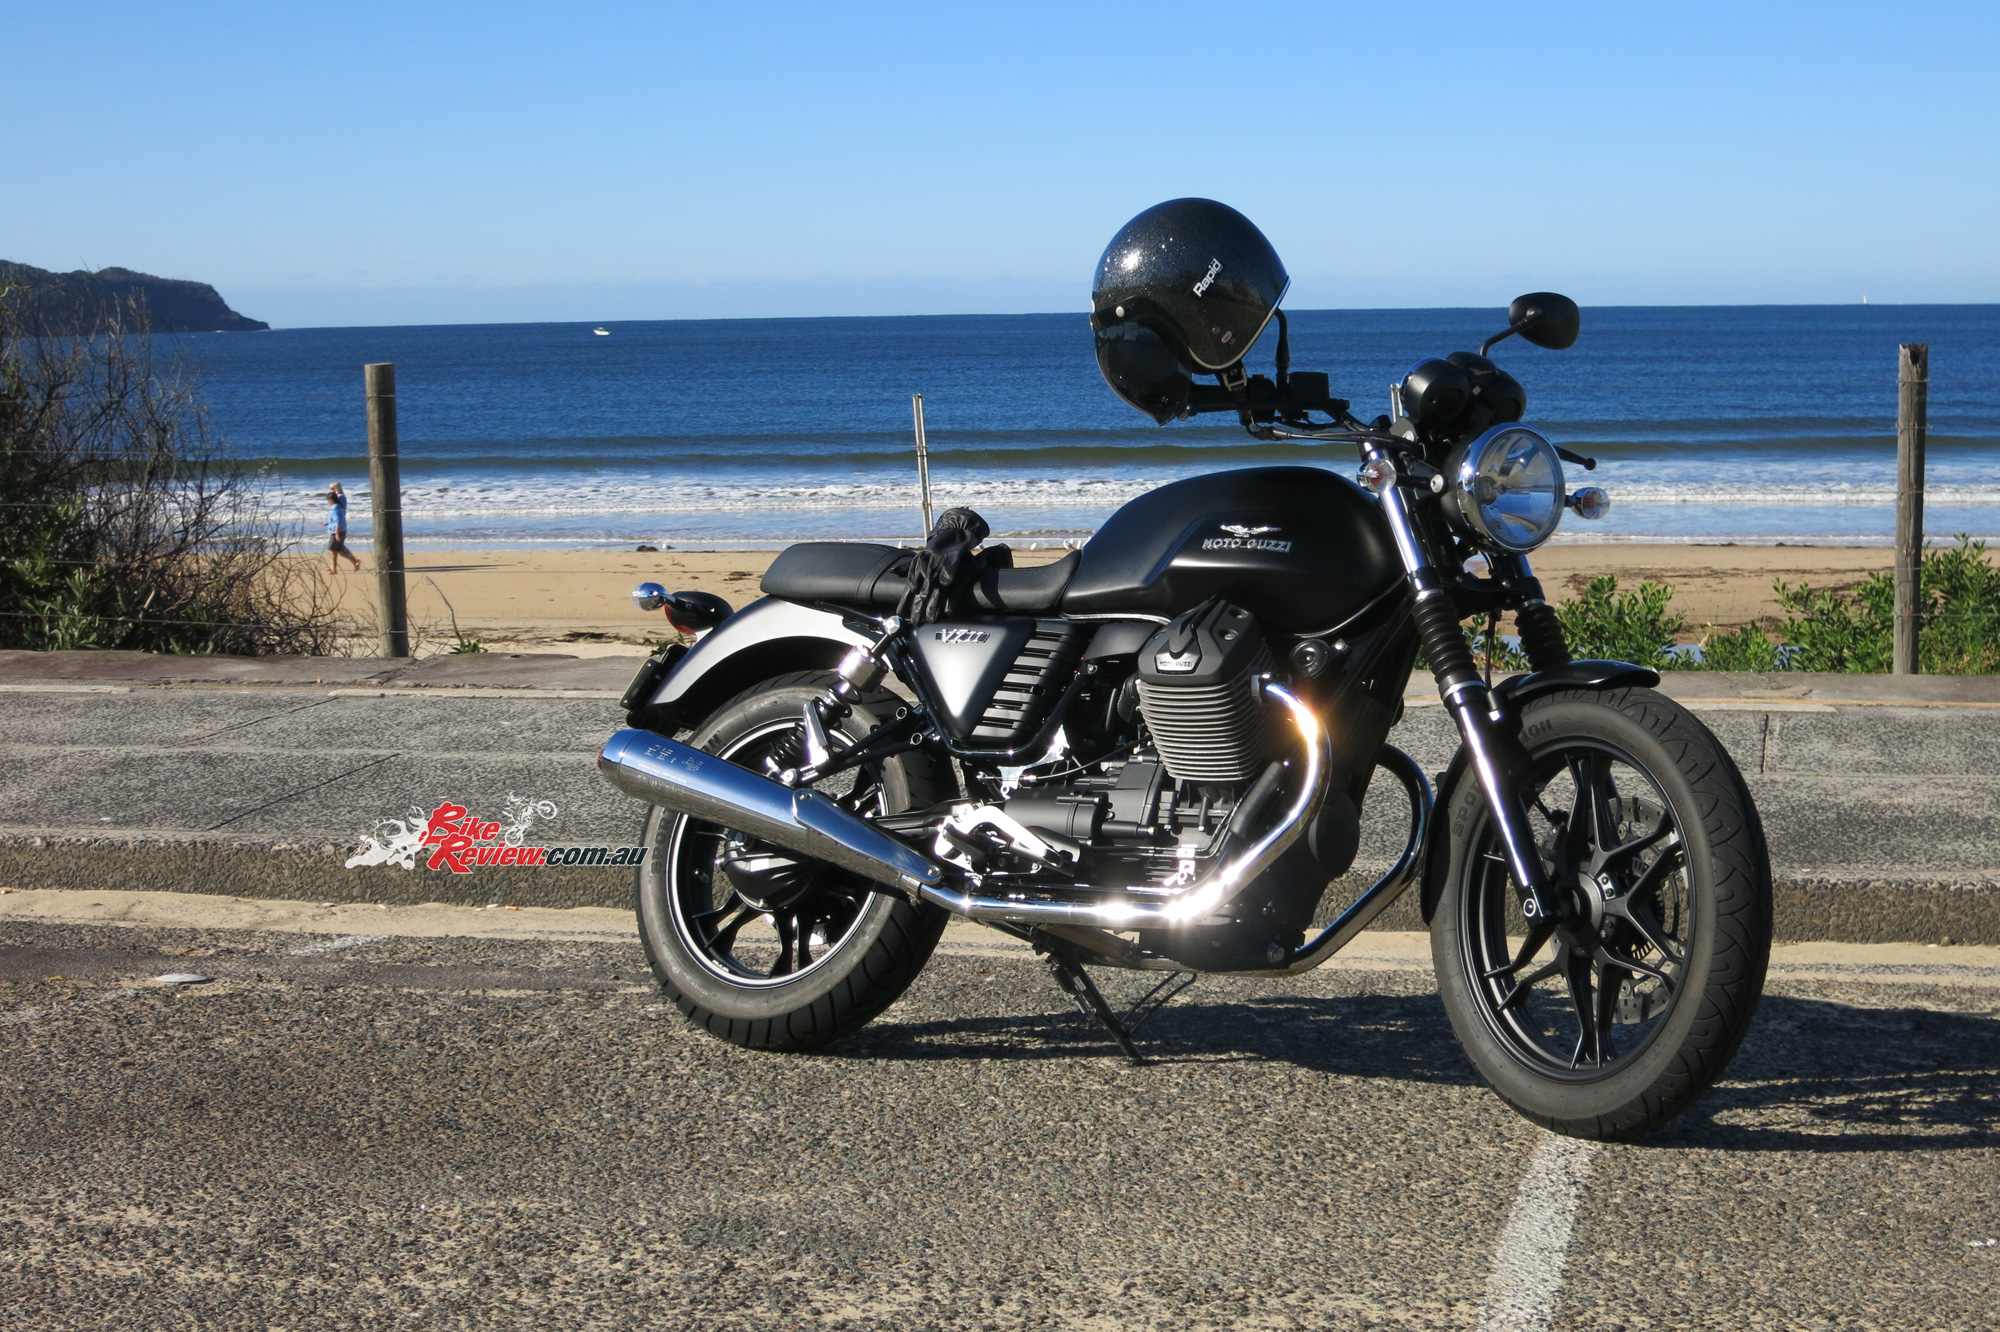 Review: 2015 Moto Guzzi V7 II Stone - Bike Review